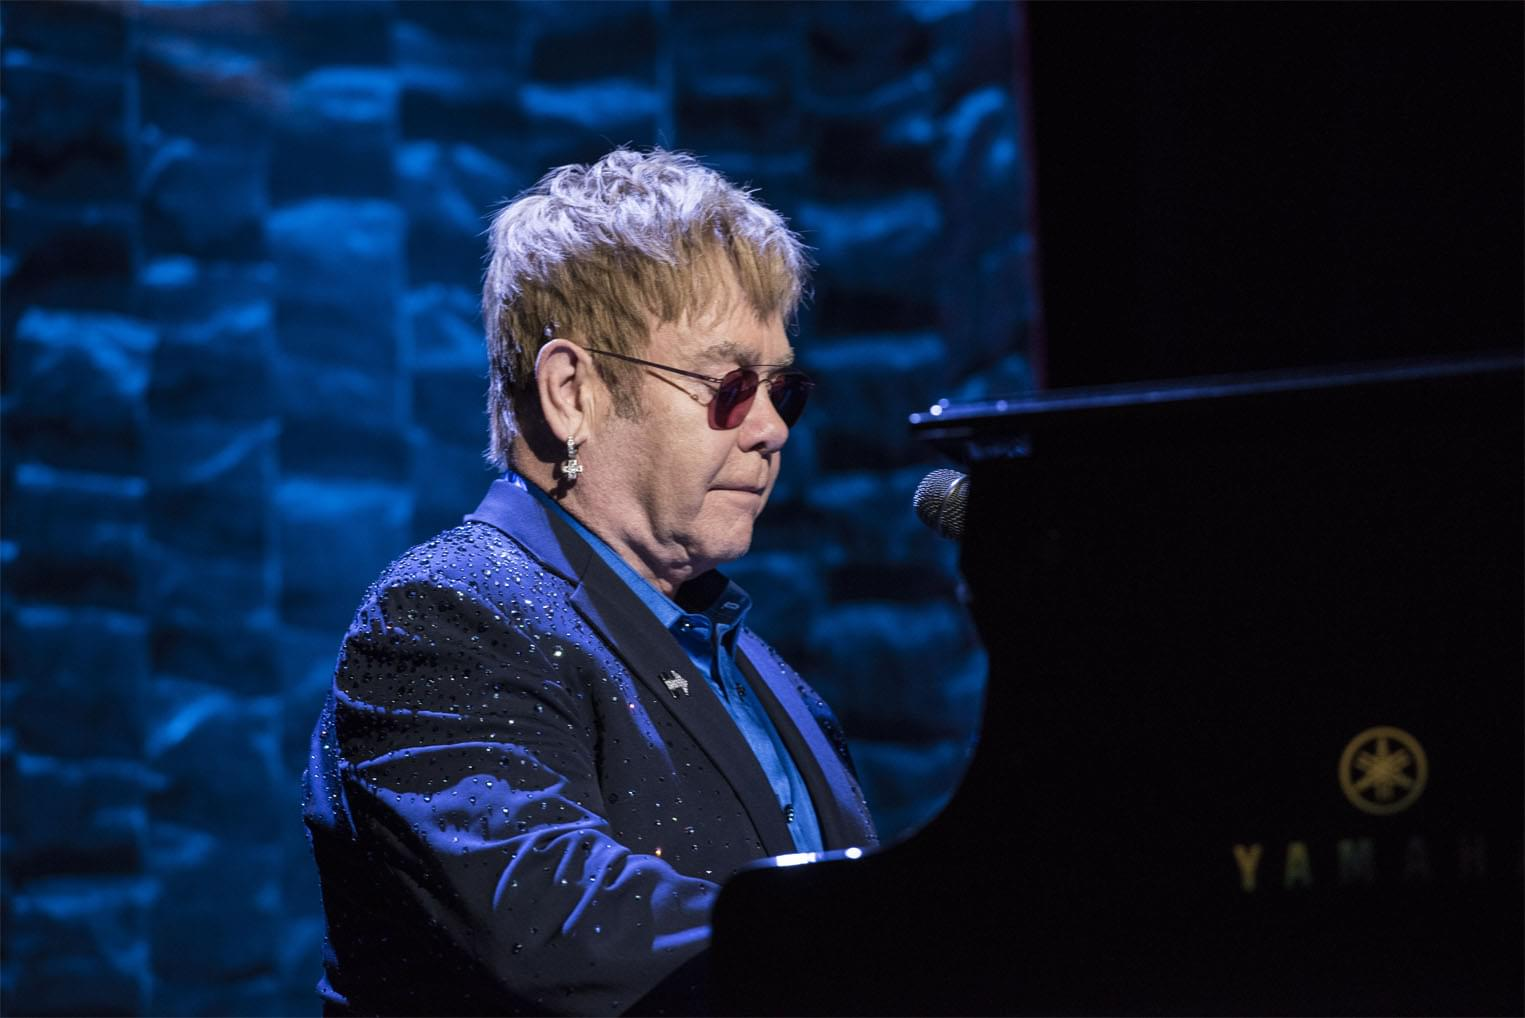 Elton John made it an hour and a half with walking Pneumonia before having to cut his concert short